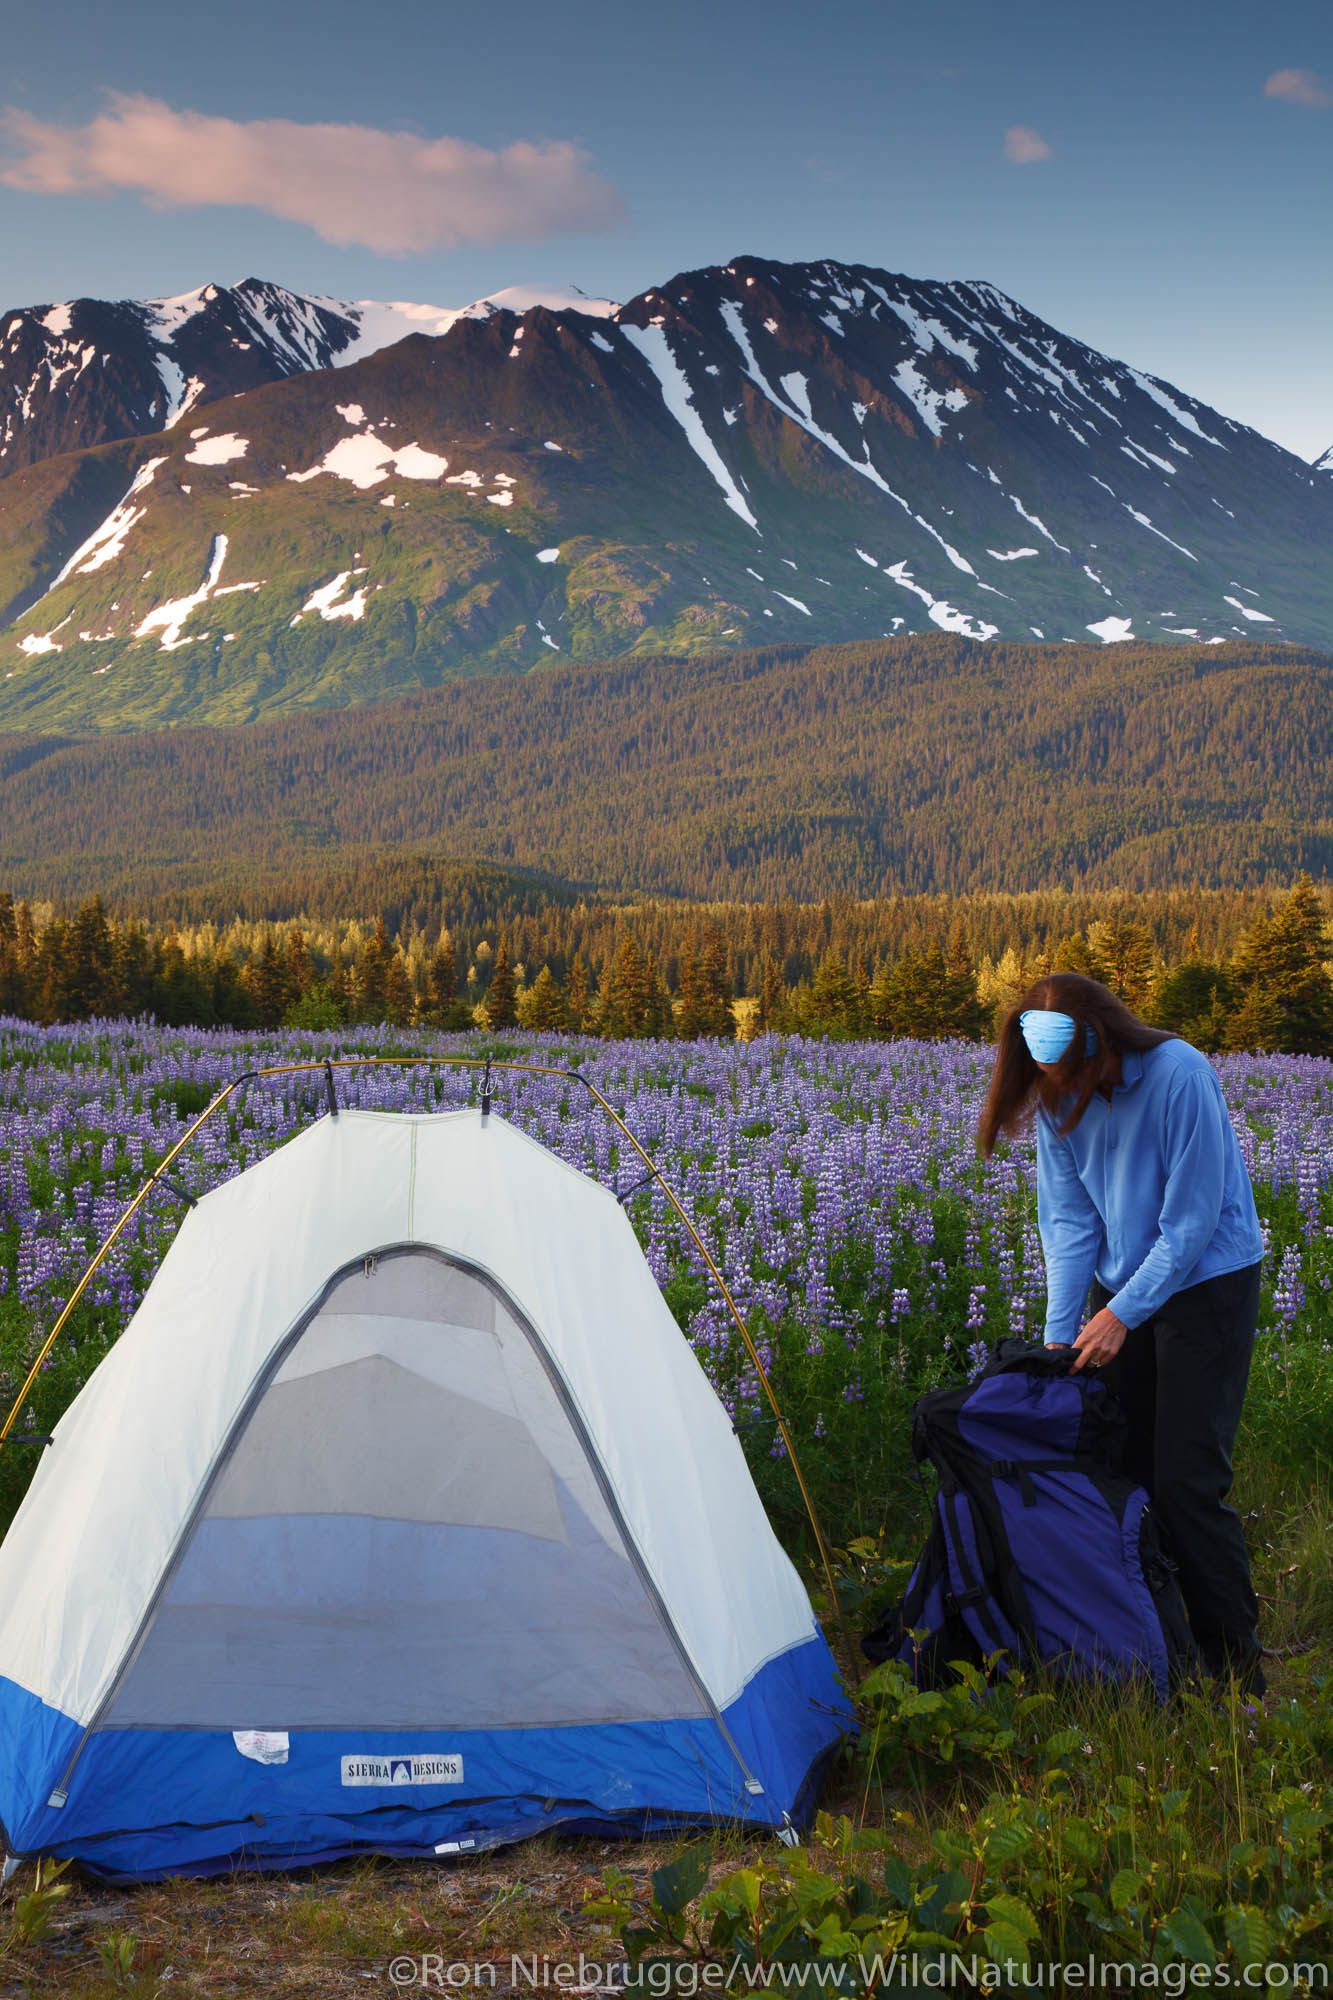 Camping in the Chugach National Forest, Alaska.  (model released)